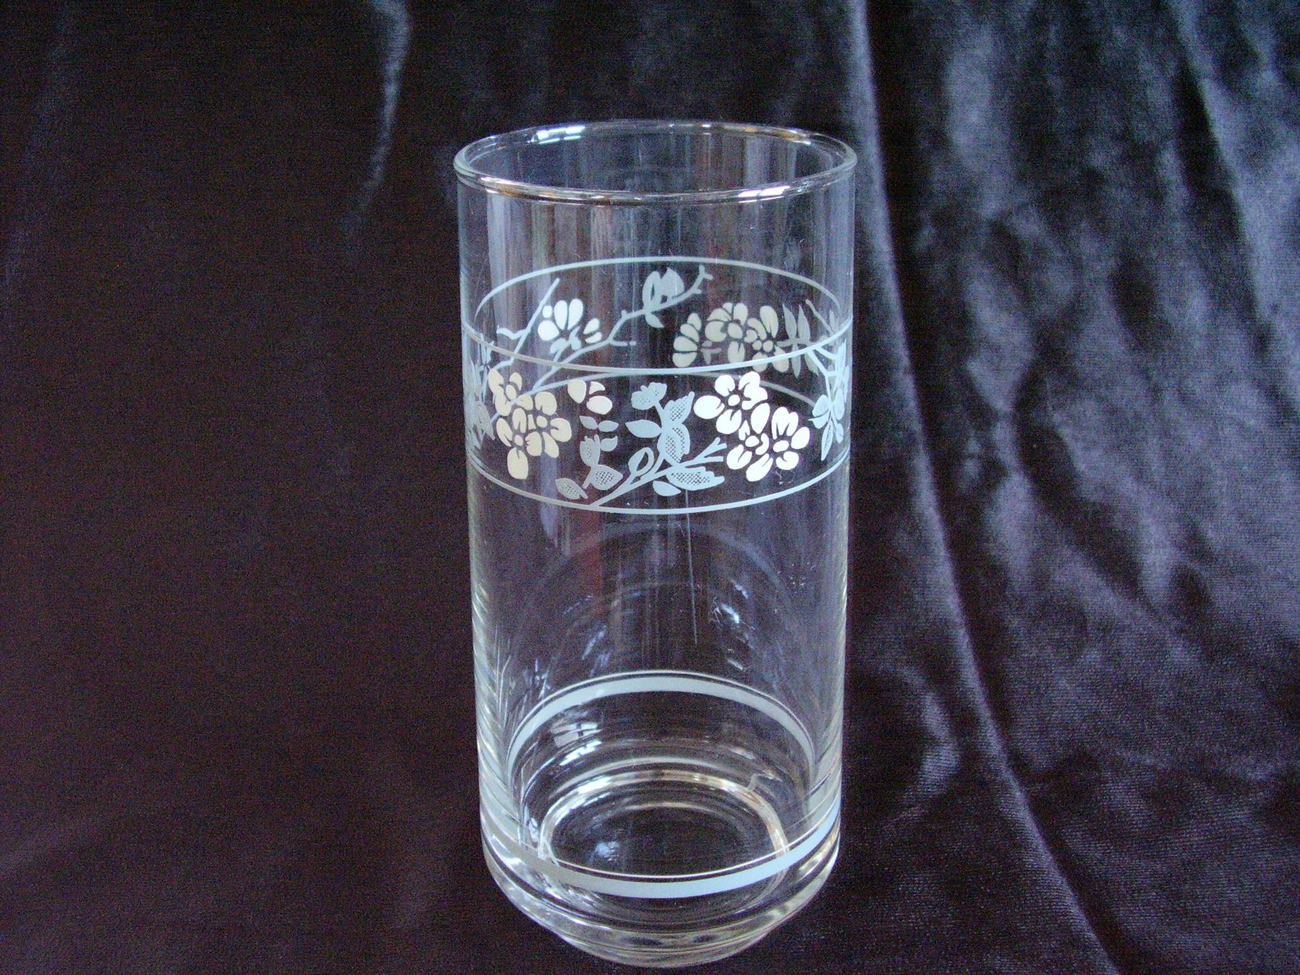 Primary image for Corning Corelle First of Spring 14 oz Glassware Tumbler